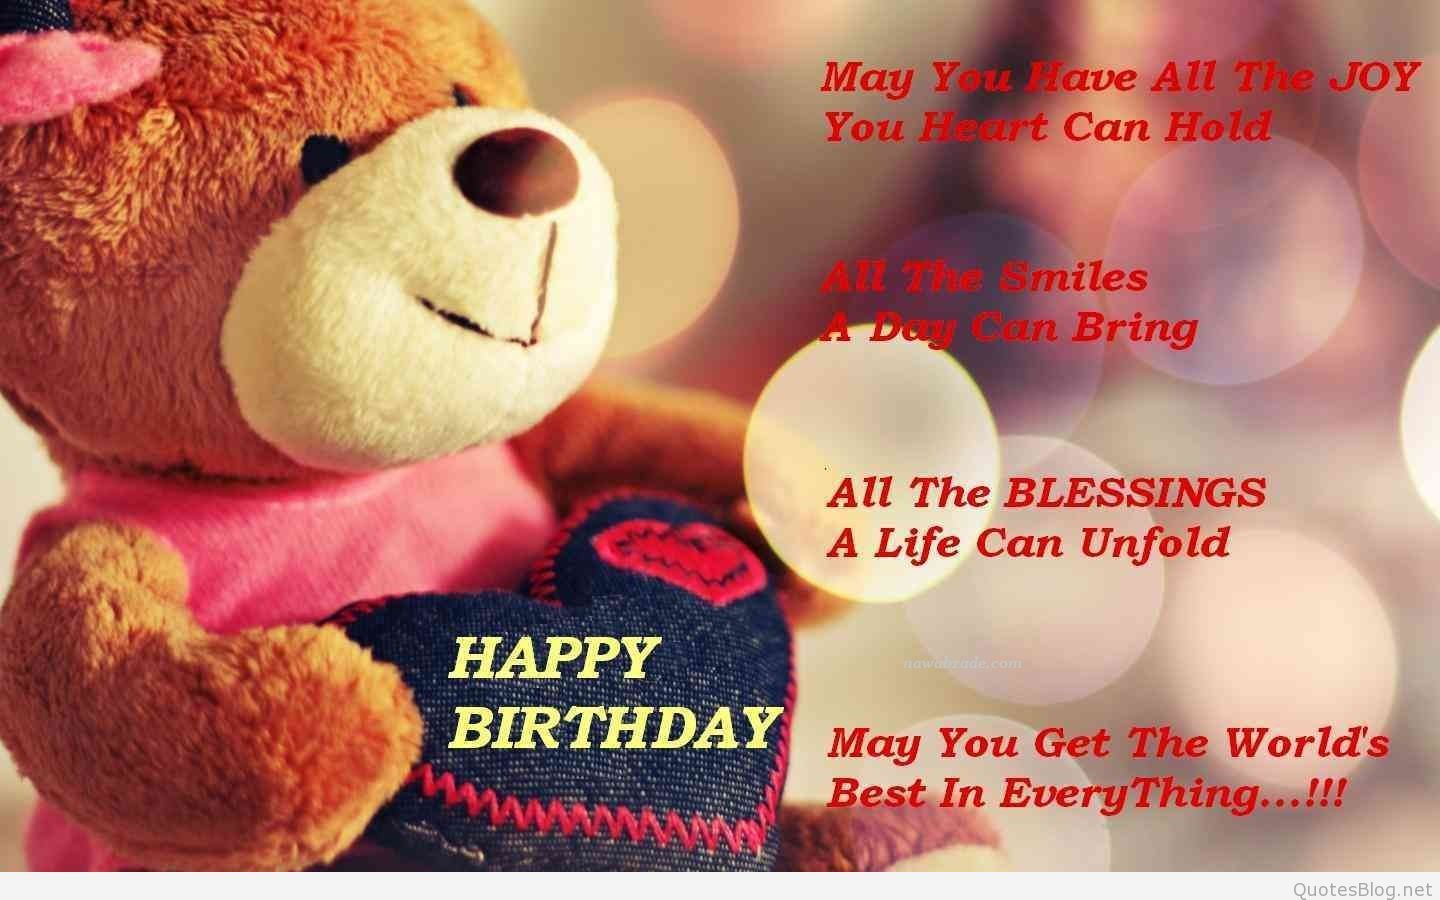 download birthday images with quotes ; happy-birthday-quotes-for-best-friend-download-latest-best-friend-happy-birthday-to-my-best-friend